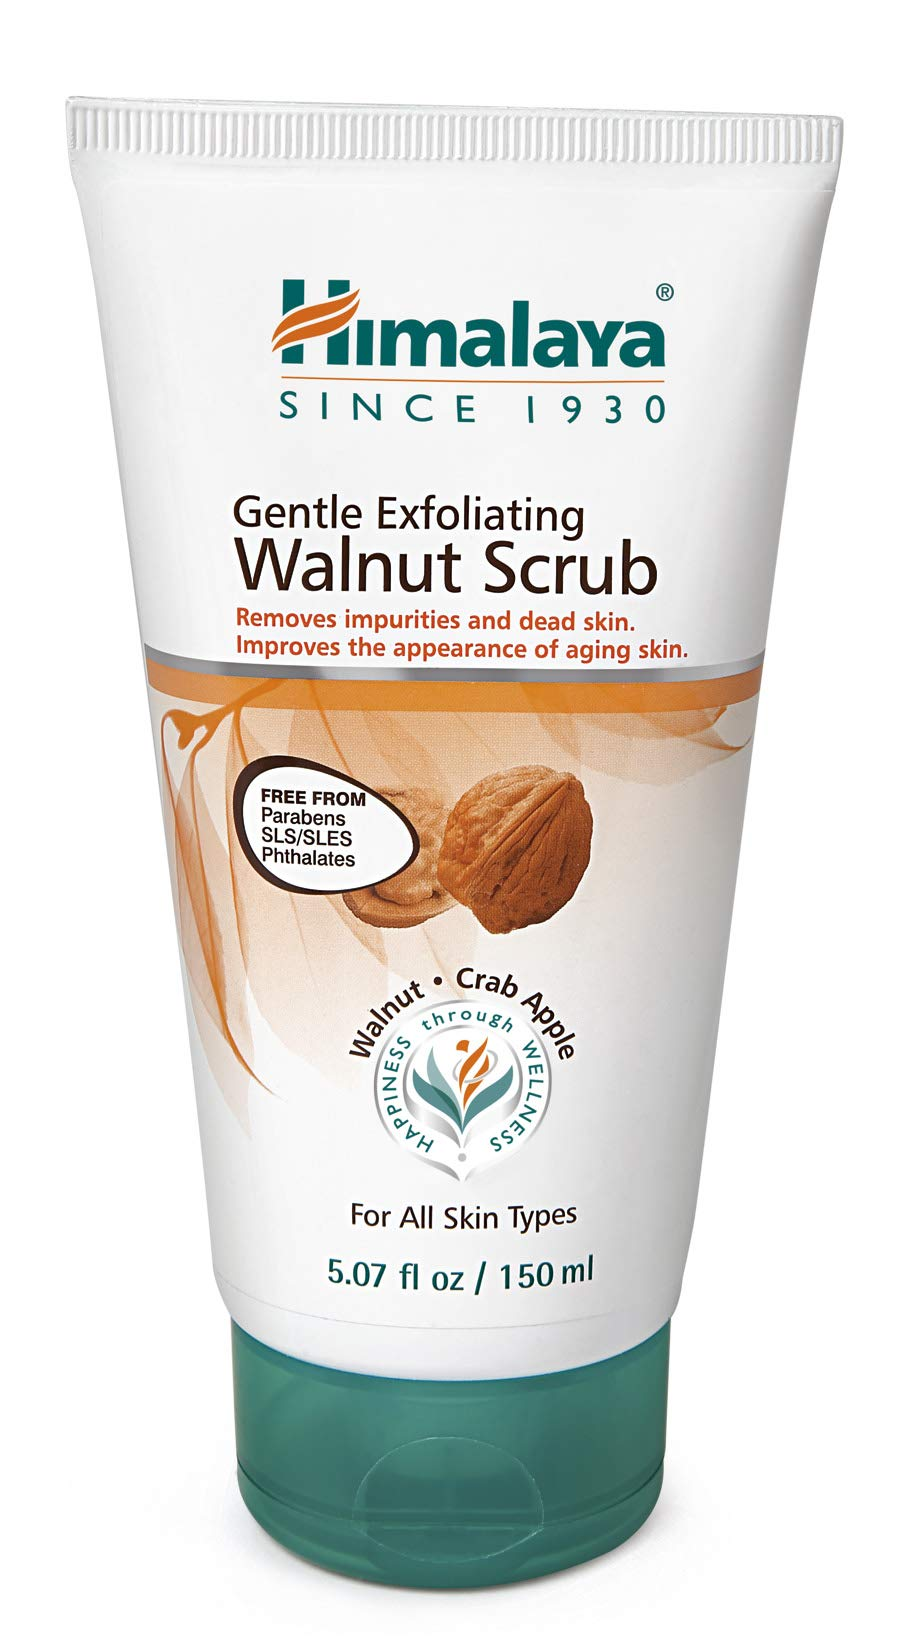 Himalaya Gentle Exfoliating Walnut Facial Scrub for Oily Skin, Free from Parabens, SLS/SLES and Phthalates 5.07 oz (150 ml)